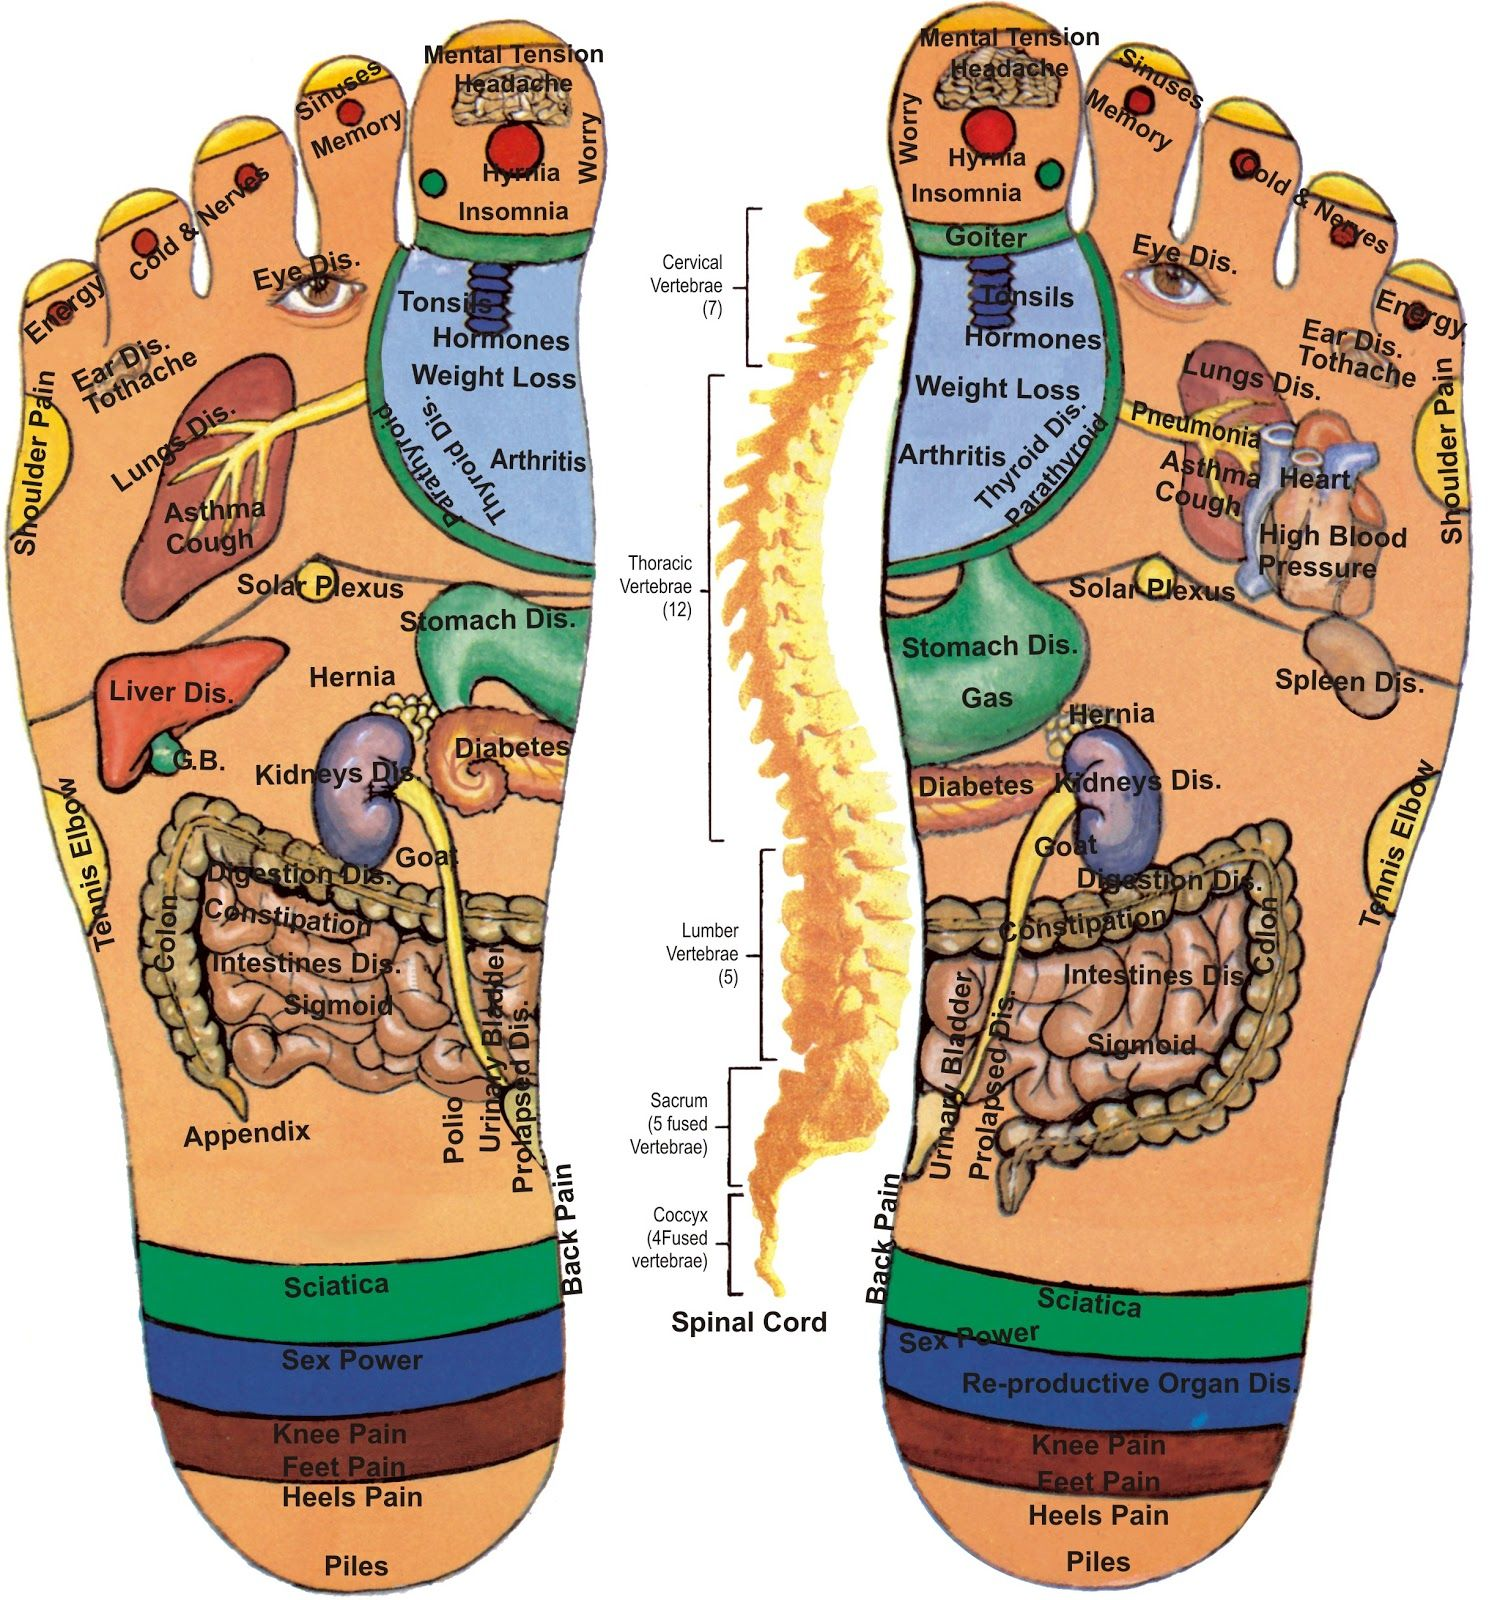 foot nerve endings diagram 2009 troy bilt bronco wiring pin by johnny chan on healing acupunture